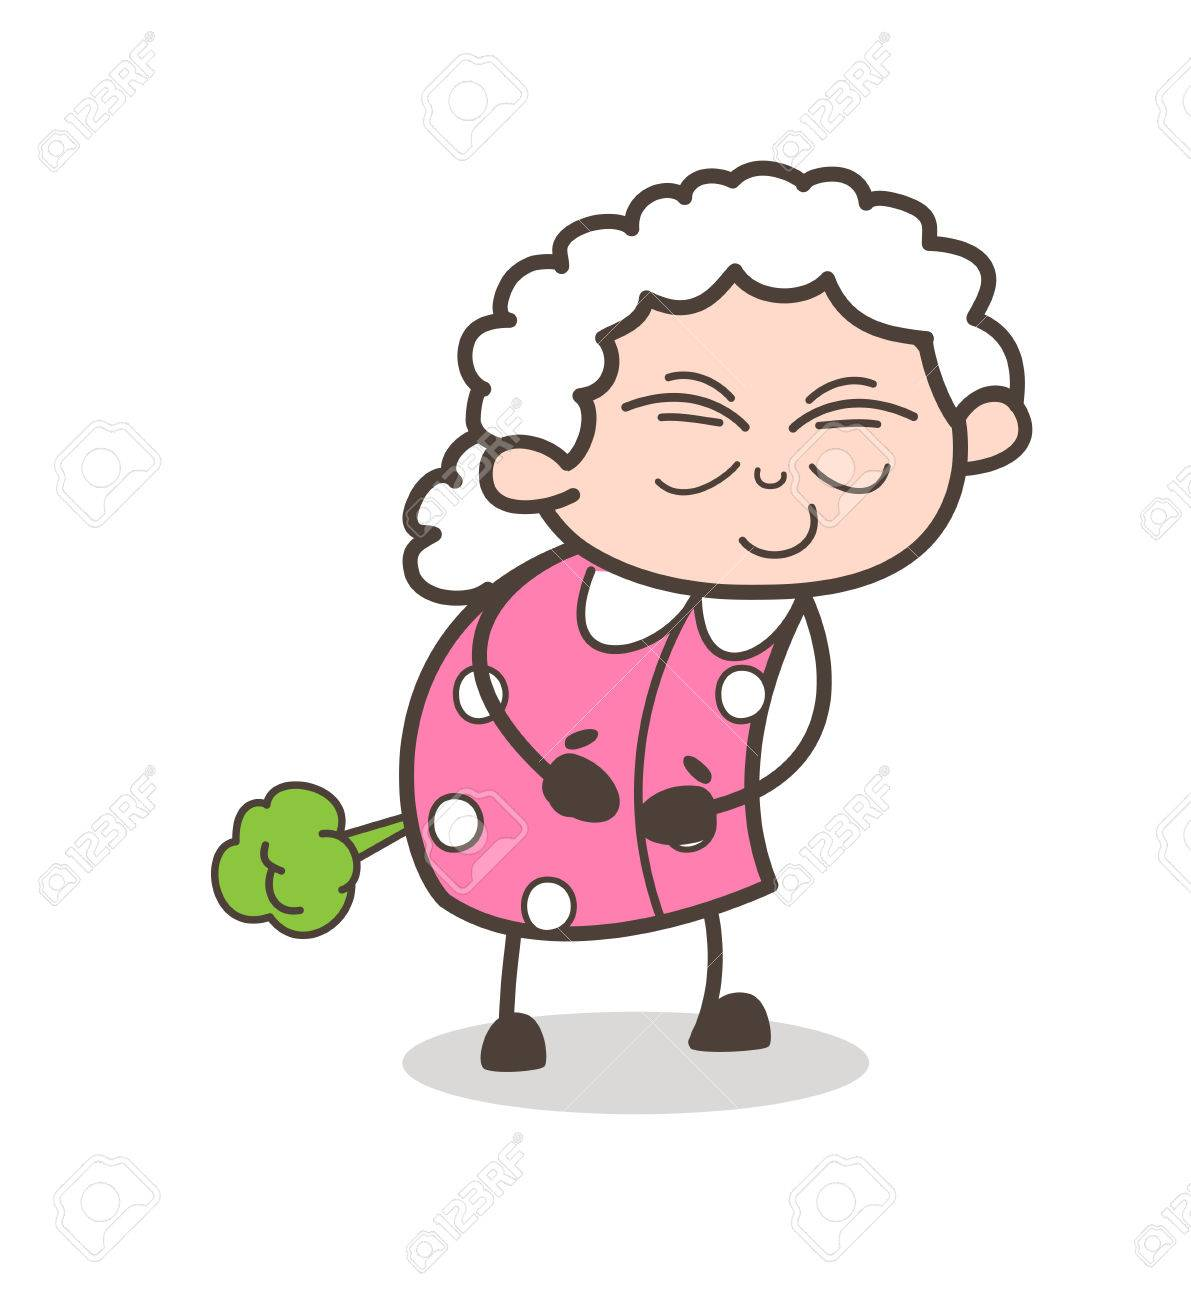 Cartoon Funny Old Woman Making Fart Vector Illustration Royalty Free Cliparts Vectors And Stock Illustration Image 83686470